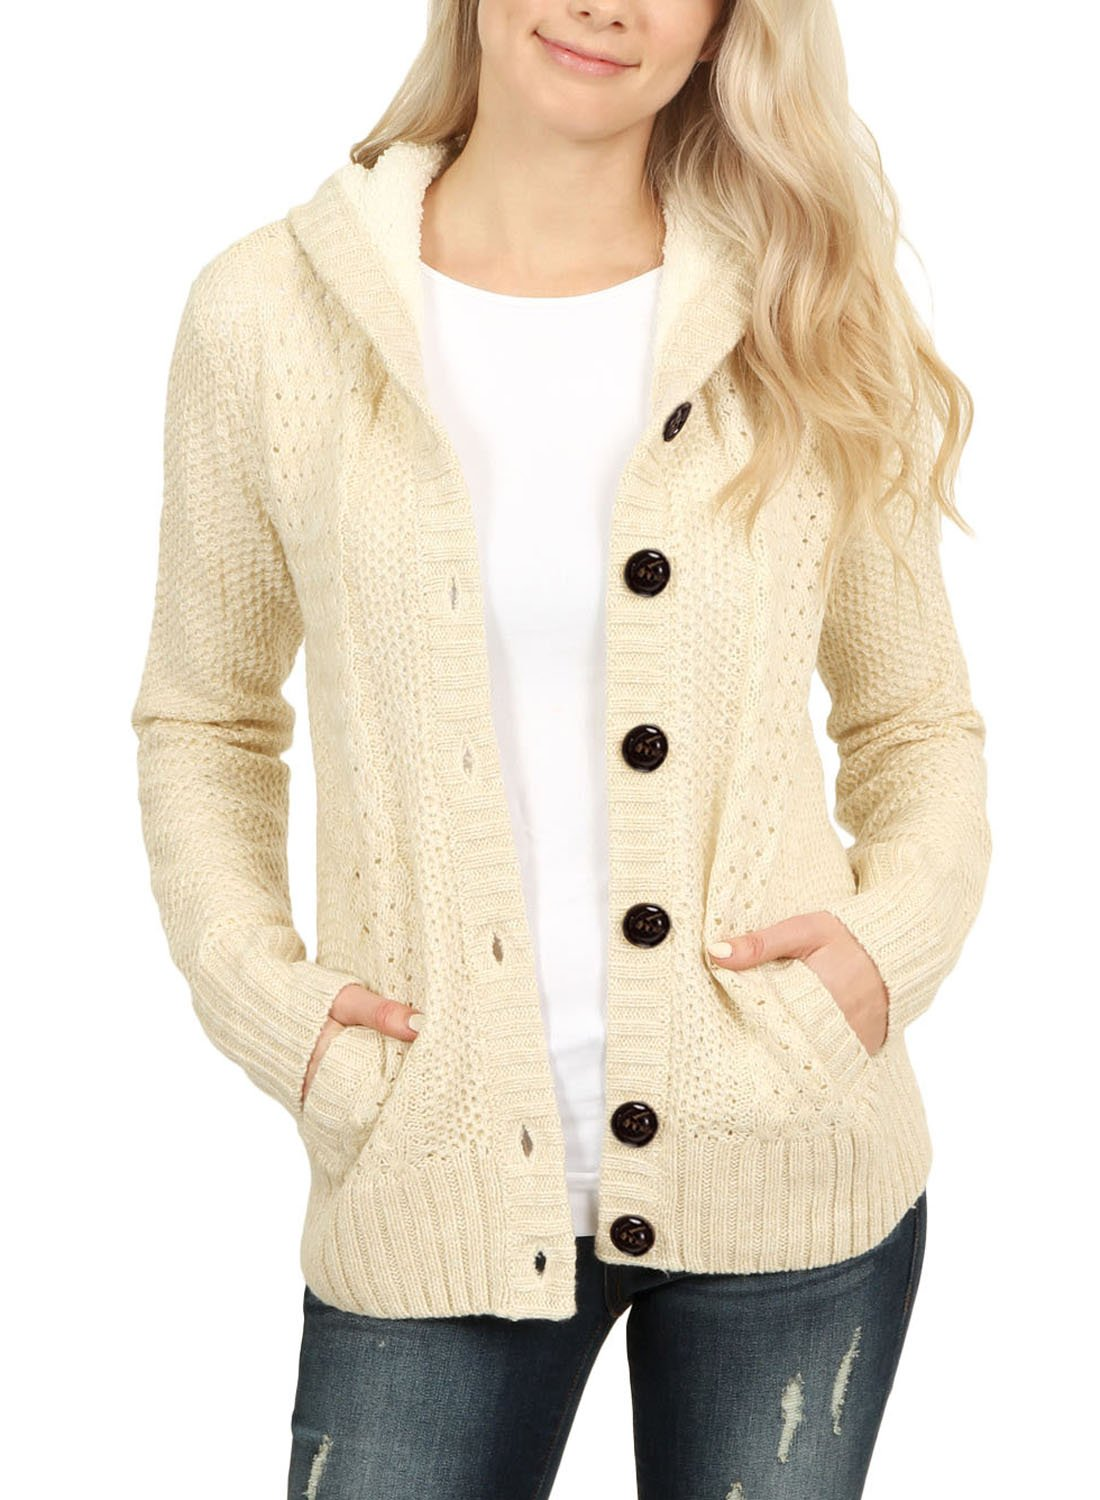 Asvivid Women Fashion Button Down Cardigan Sweater Casual Knit Warm Short Tops Coat Size UK6-24